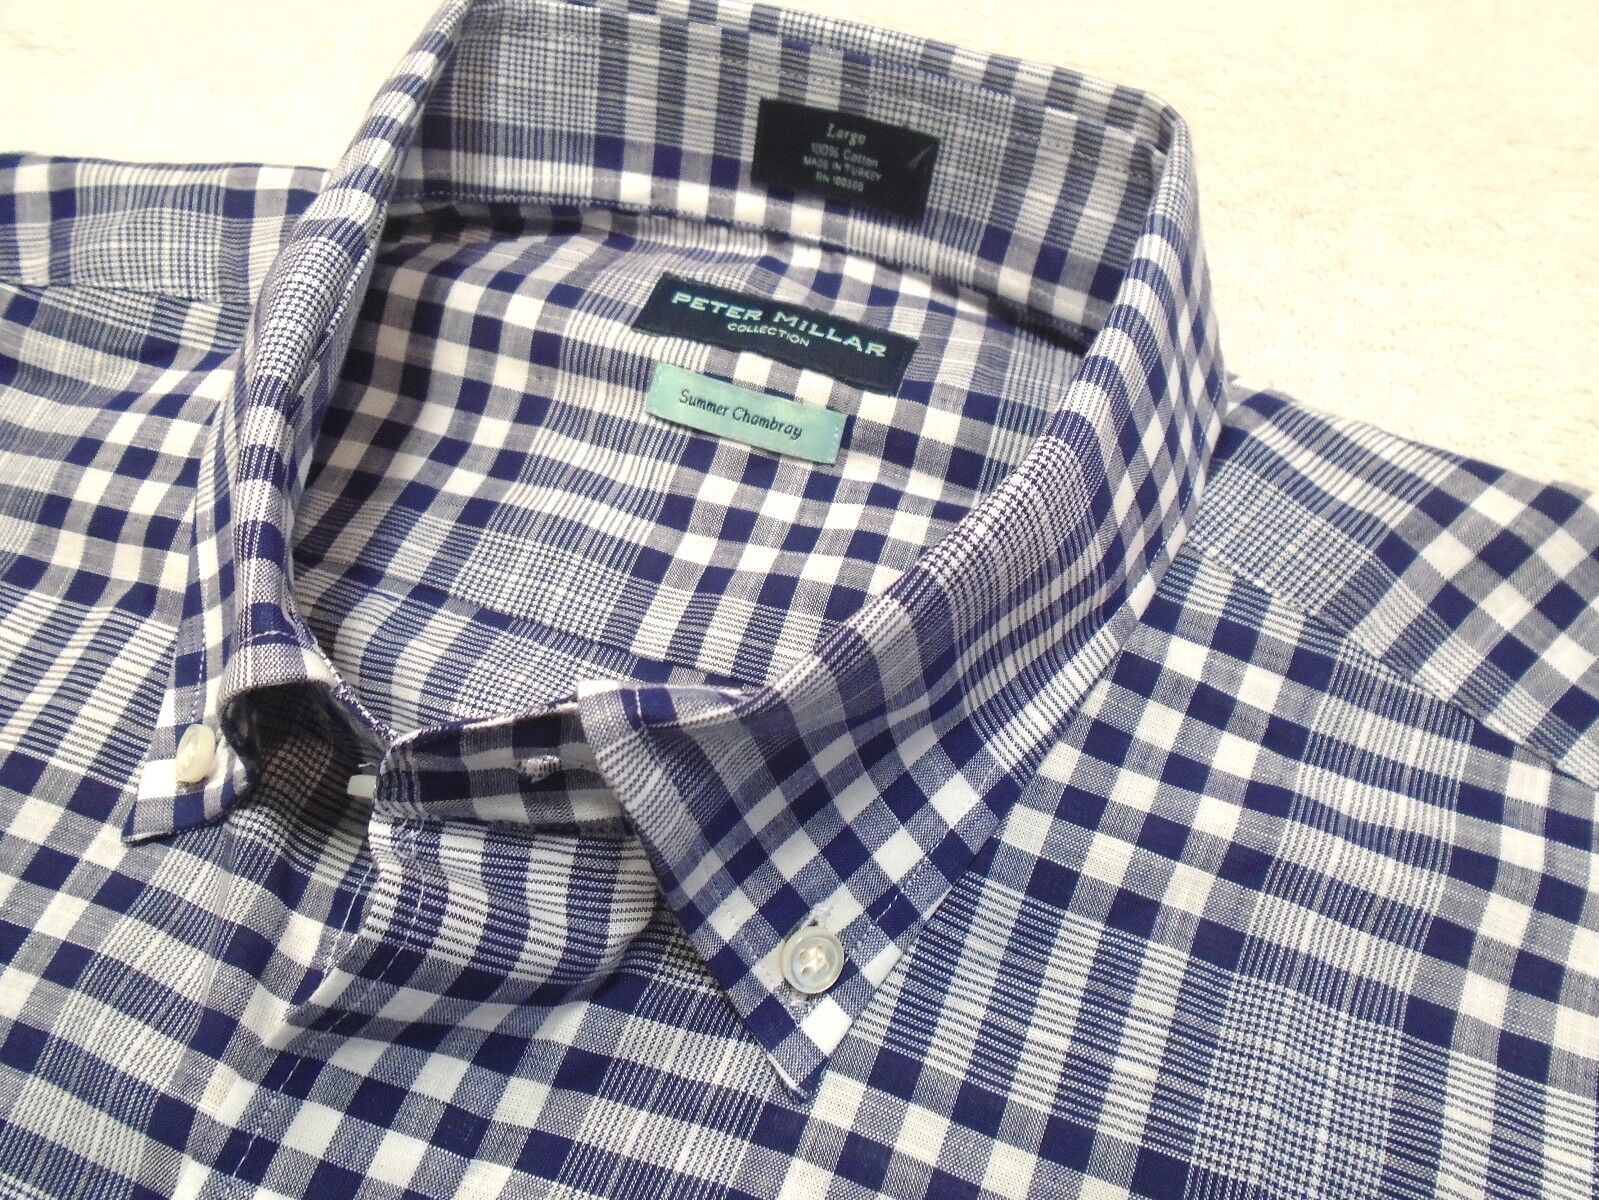 Peter Millar 100% Cotton Philosopher's Trail Plaid Sport Shirt NWT Large